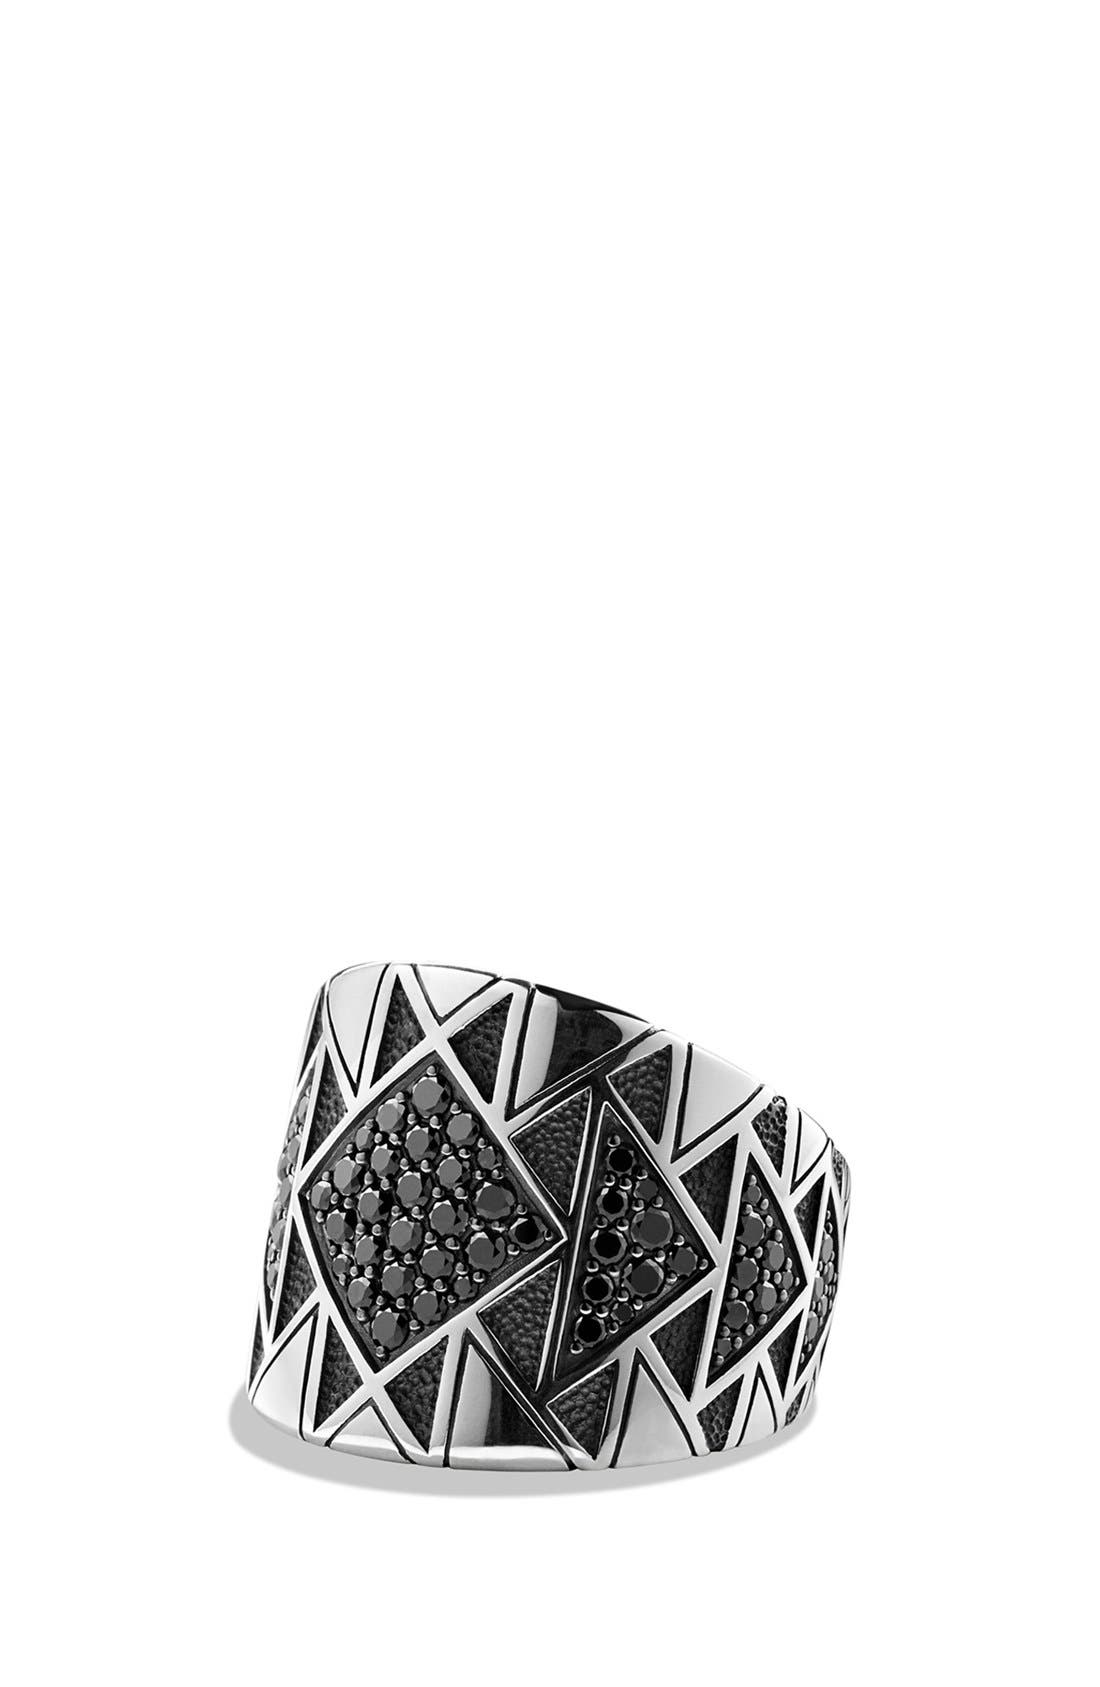 Southwest Signet Ring with Black Diamonds,                         Main,                         color, Black Diamond